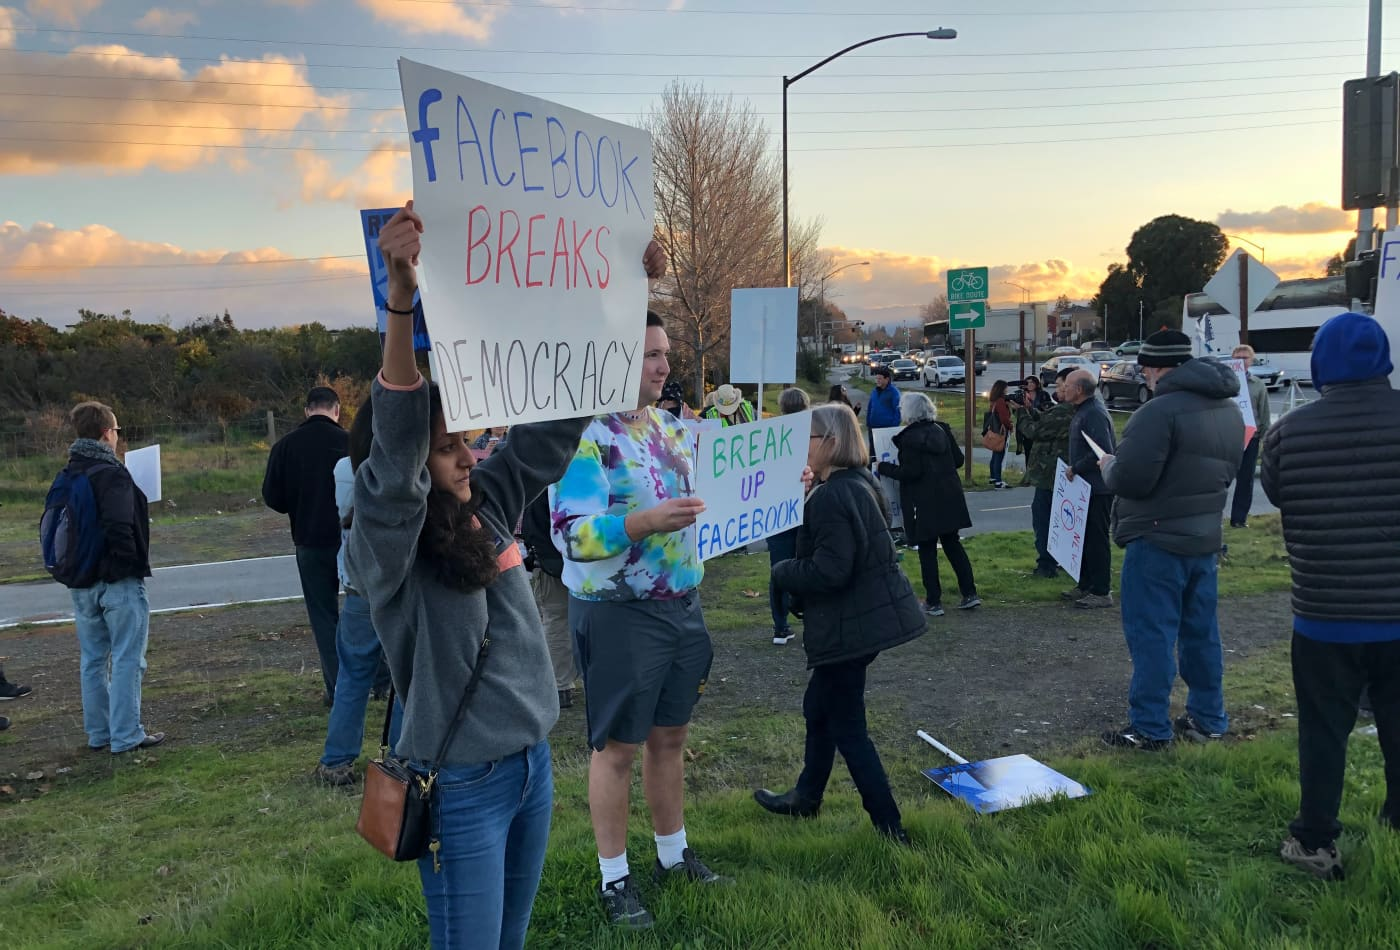 Protesters gather in front of Facebook HQ to decry its policy of allowing lies in political ads